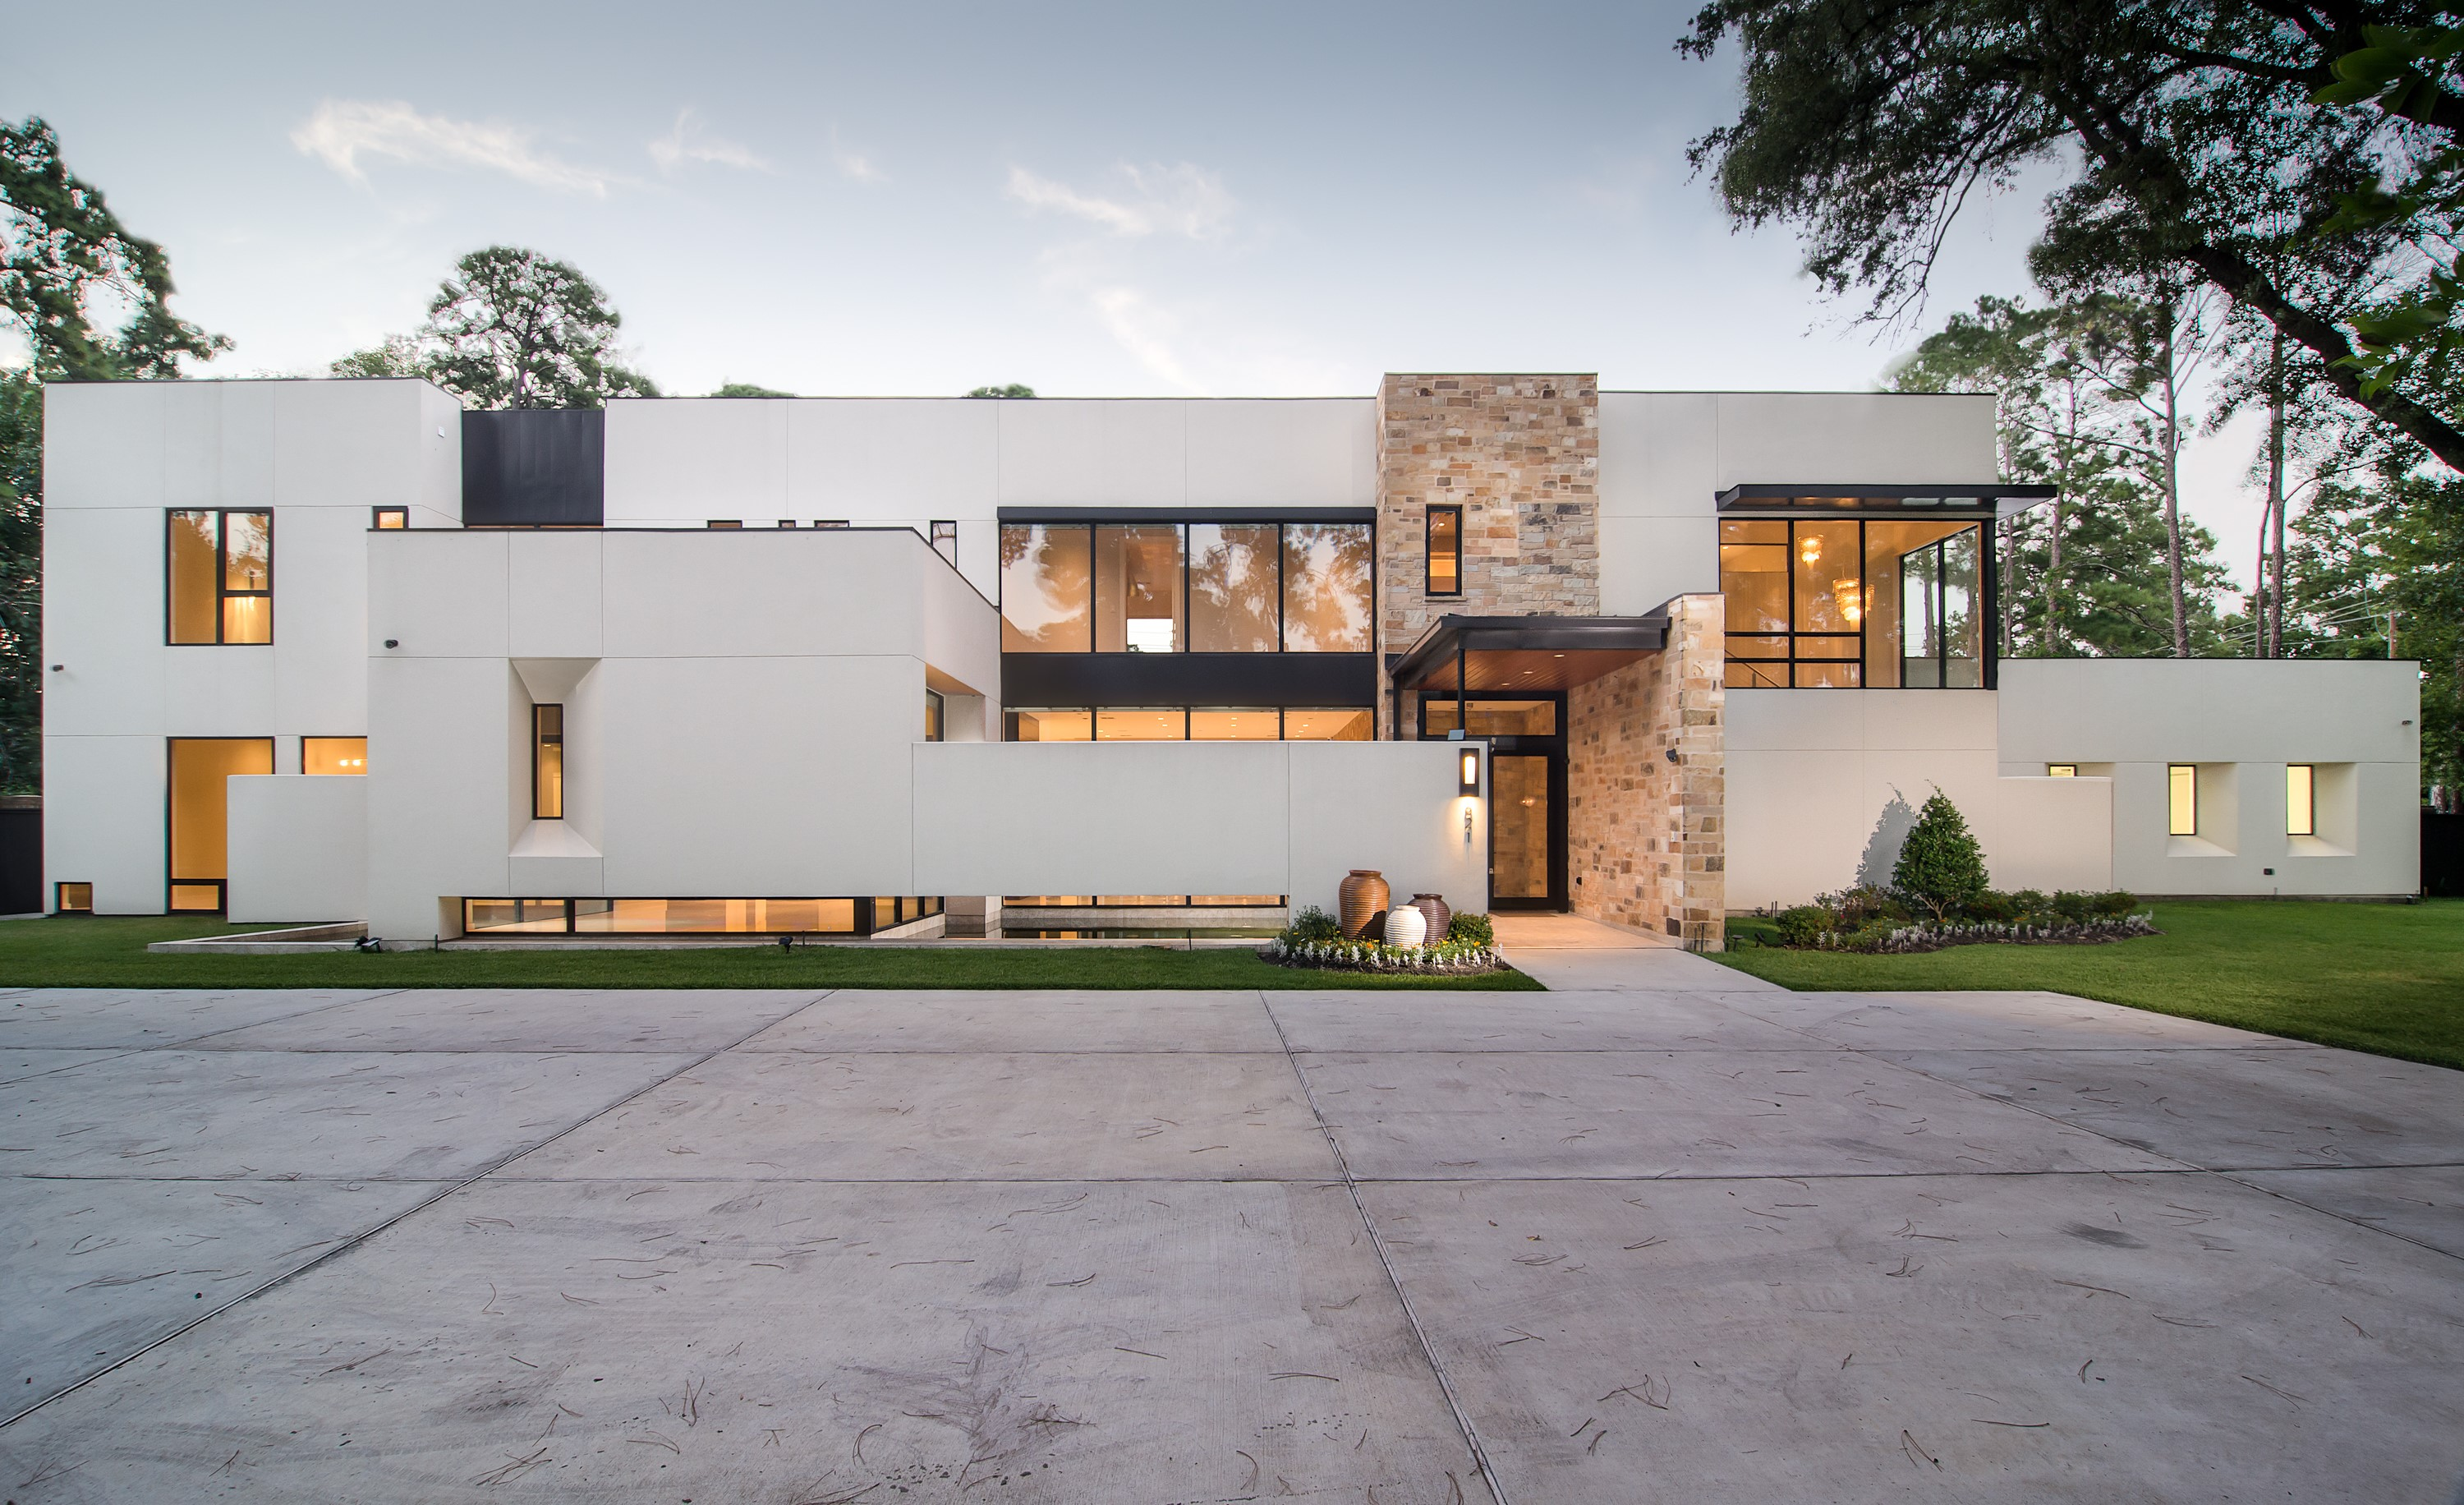 Modern home tours returns to houston on september 20th for Interni casa moderna